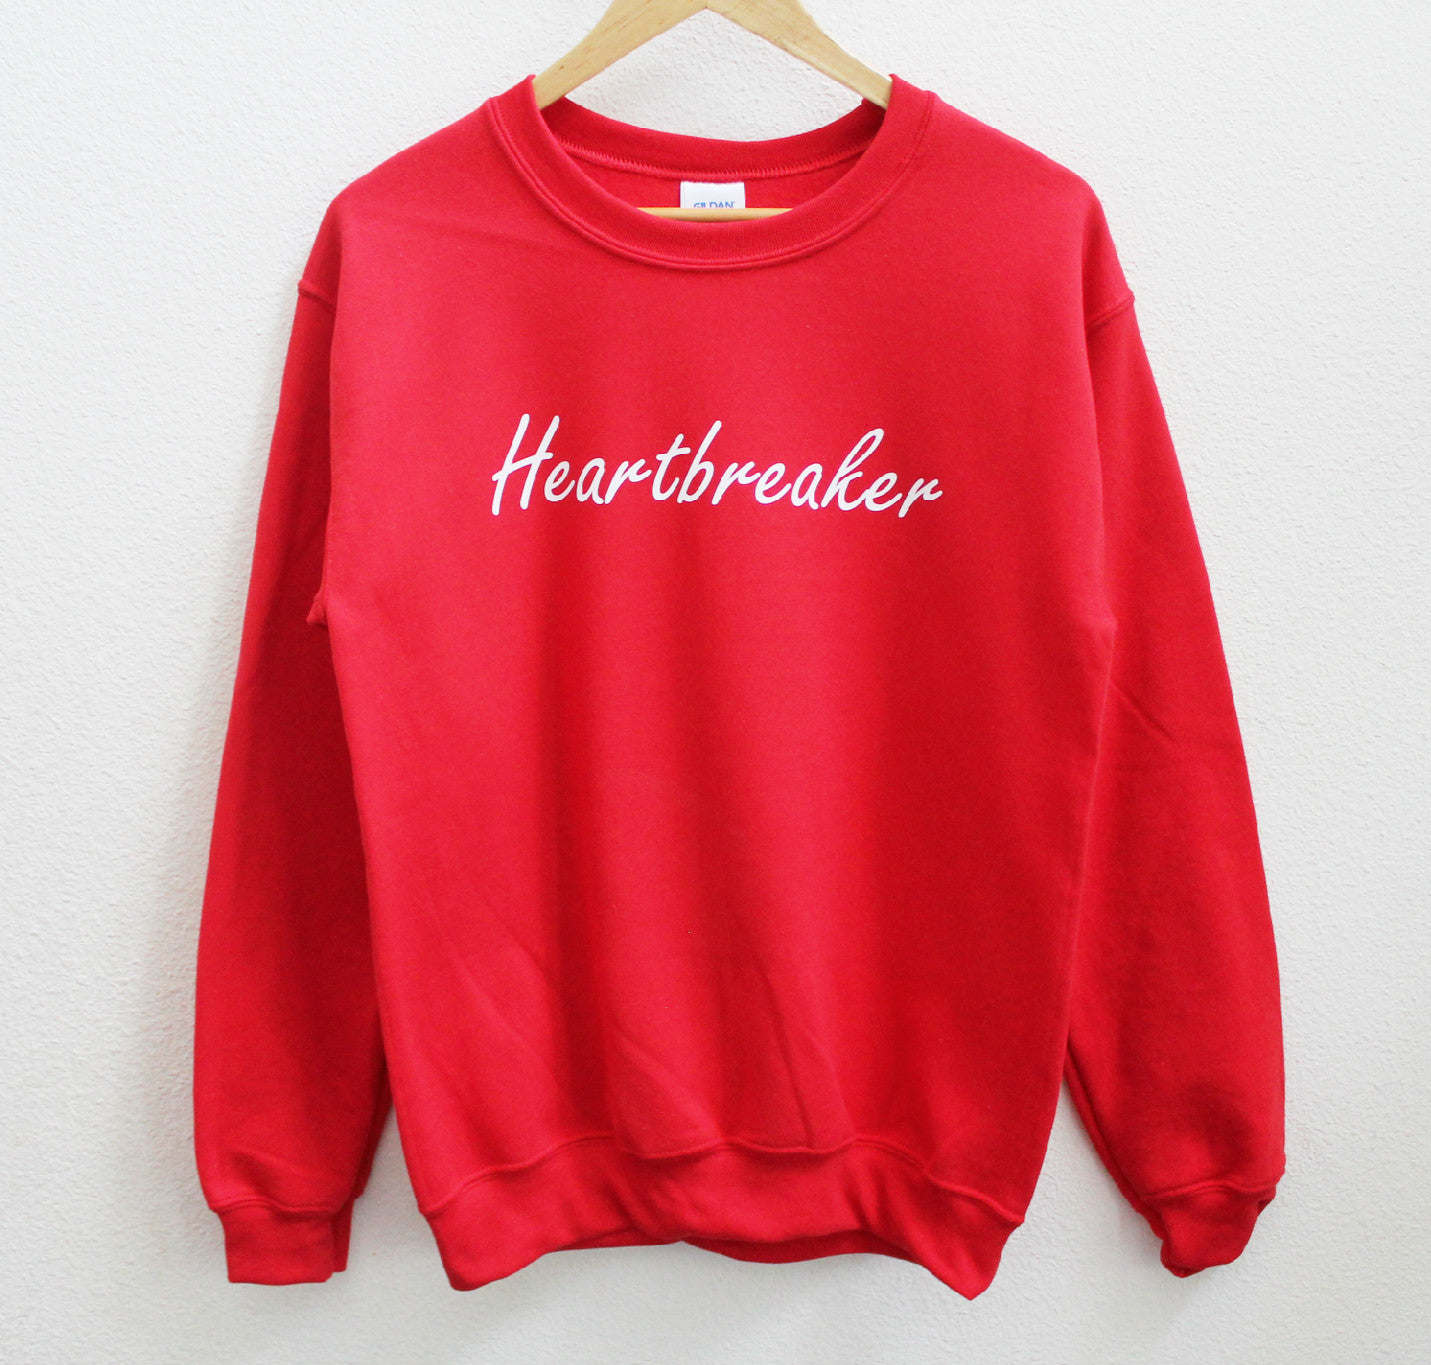 Heartbreaker Red Sweatshirt